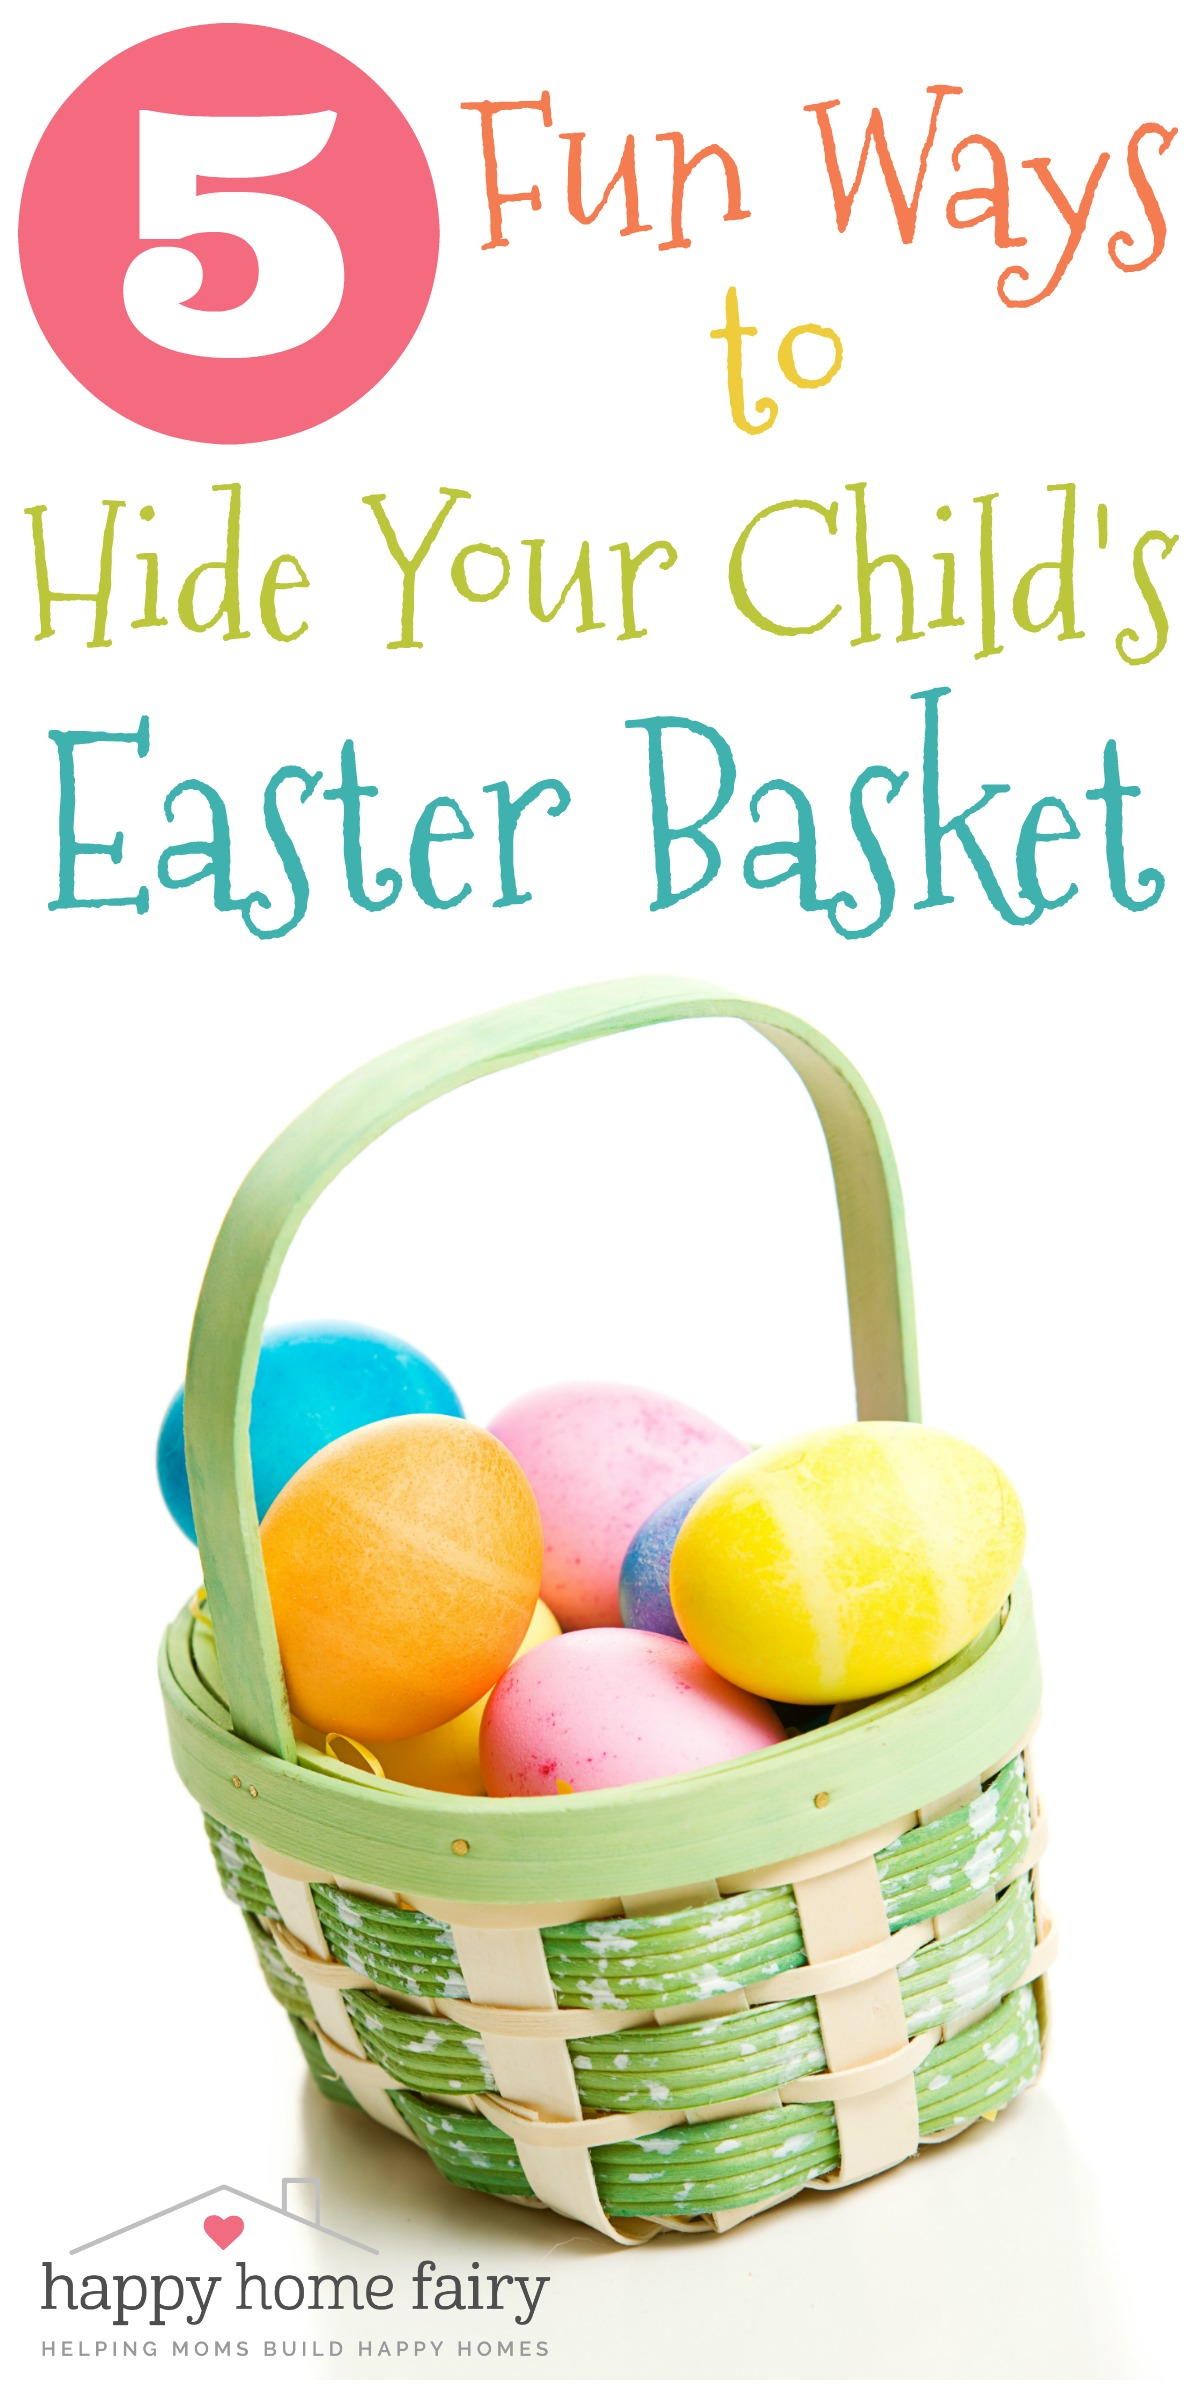 5 fun ways to hide your childs easter basket happy home fairy 5 fun ways to hide your childs easter basket negle Choice Image